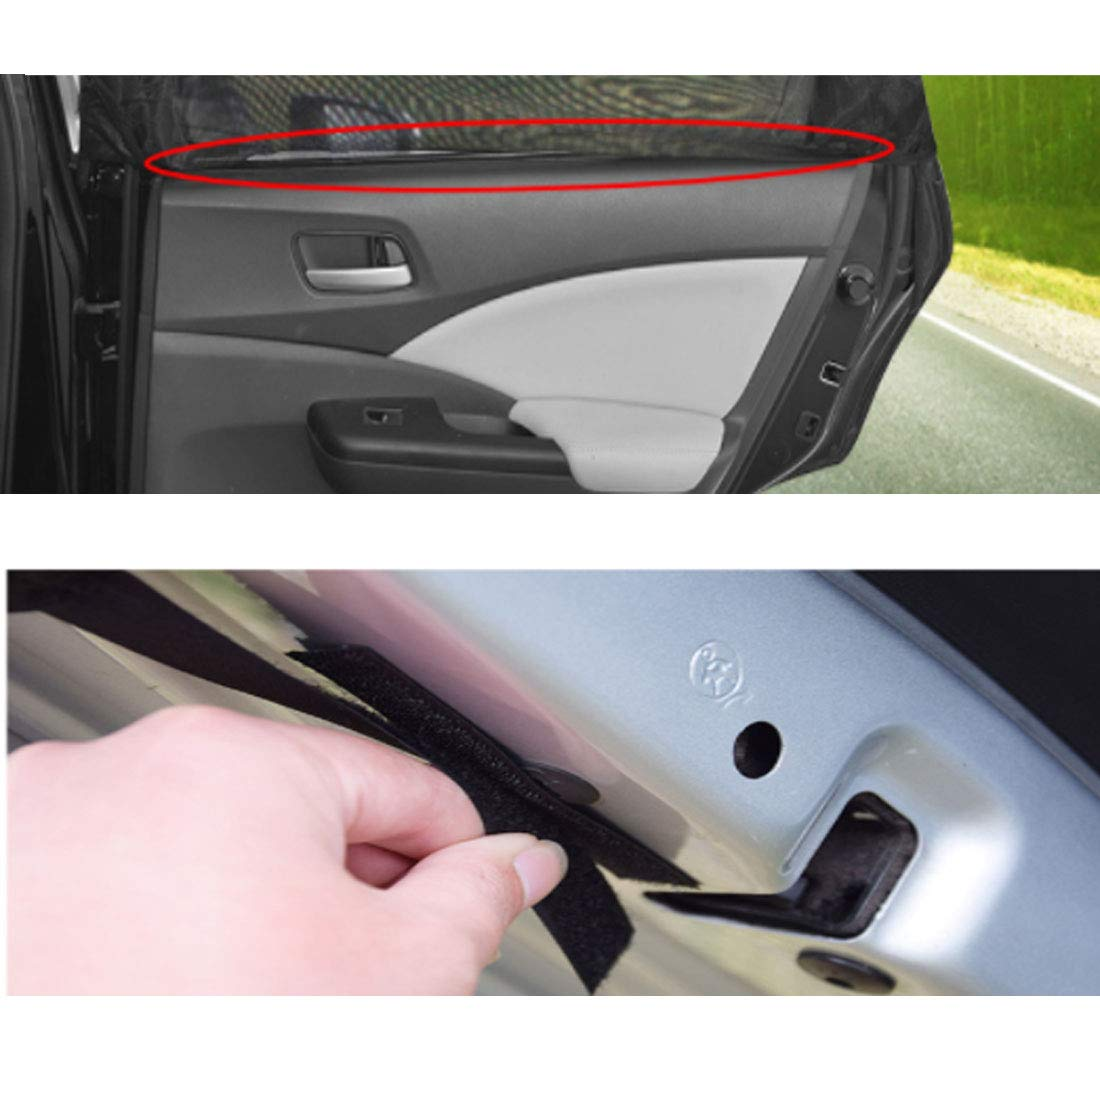 43.3 x 31.5 x20 inches(Stretching) 43.3 x 31.5 x20 inches/(Stretching/) AMOUTOR Car Window Shade Set of 2 Car Sun Shade Baby Kid Pet Breathable Mesh Backseat Fits for Back Windows of Most Car